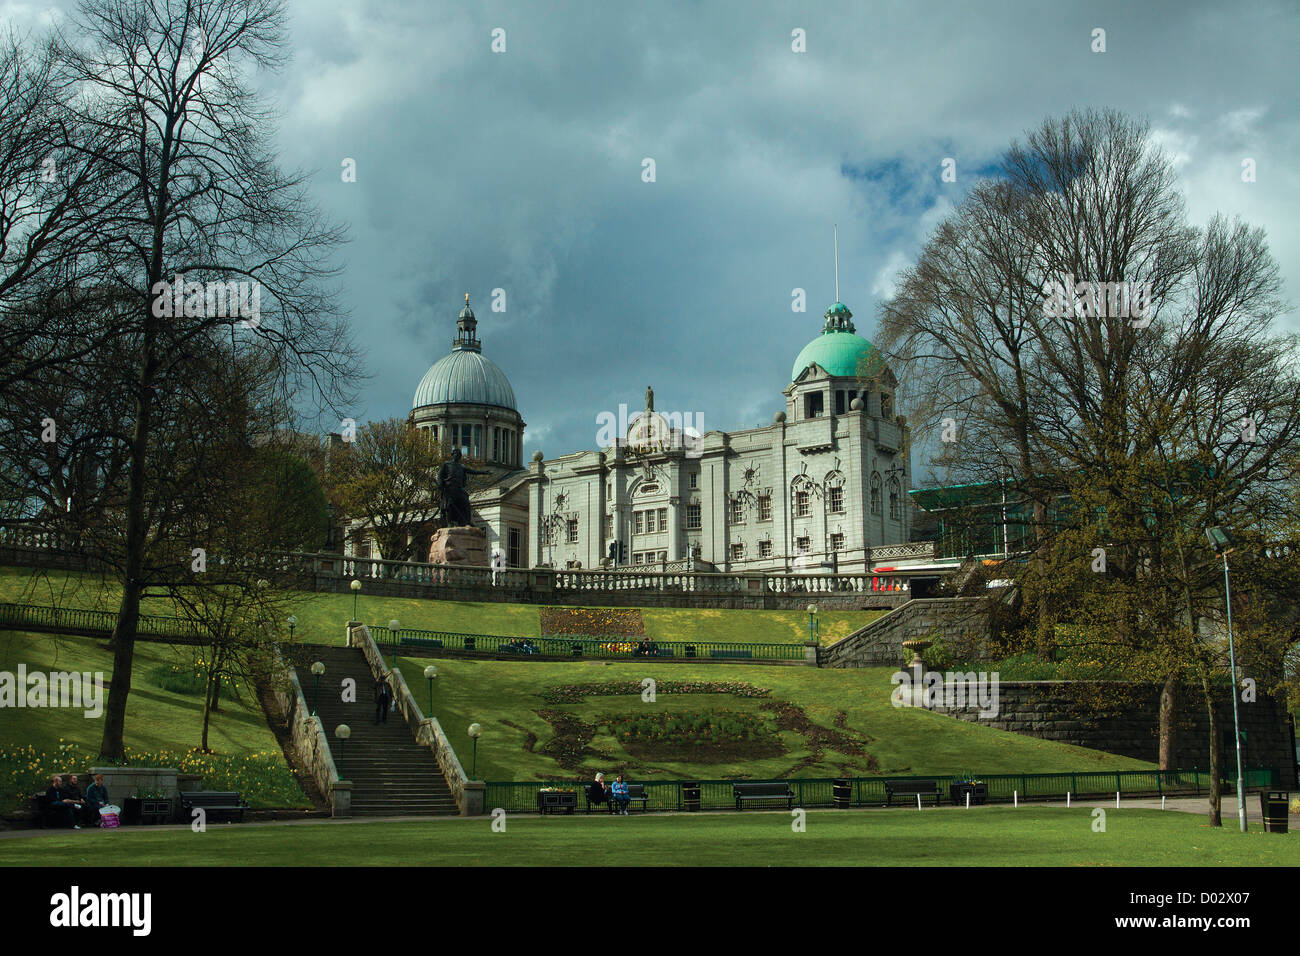 His Majesty's Theatre from Union Terrace Gardens in the city of Aberdeen - Stock Image